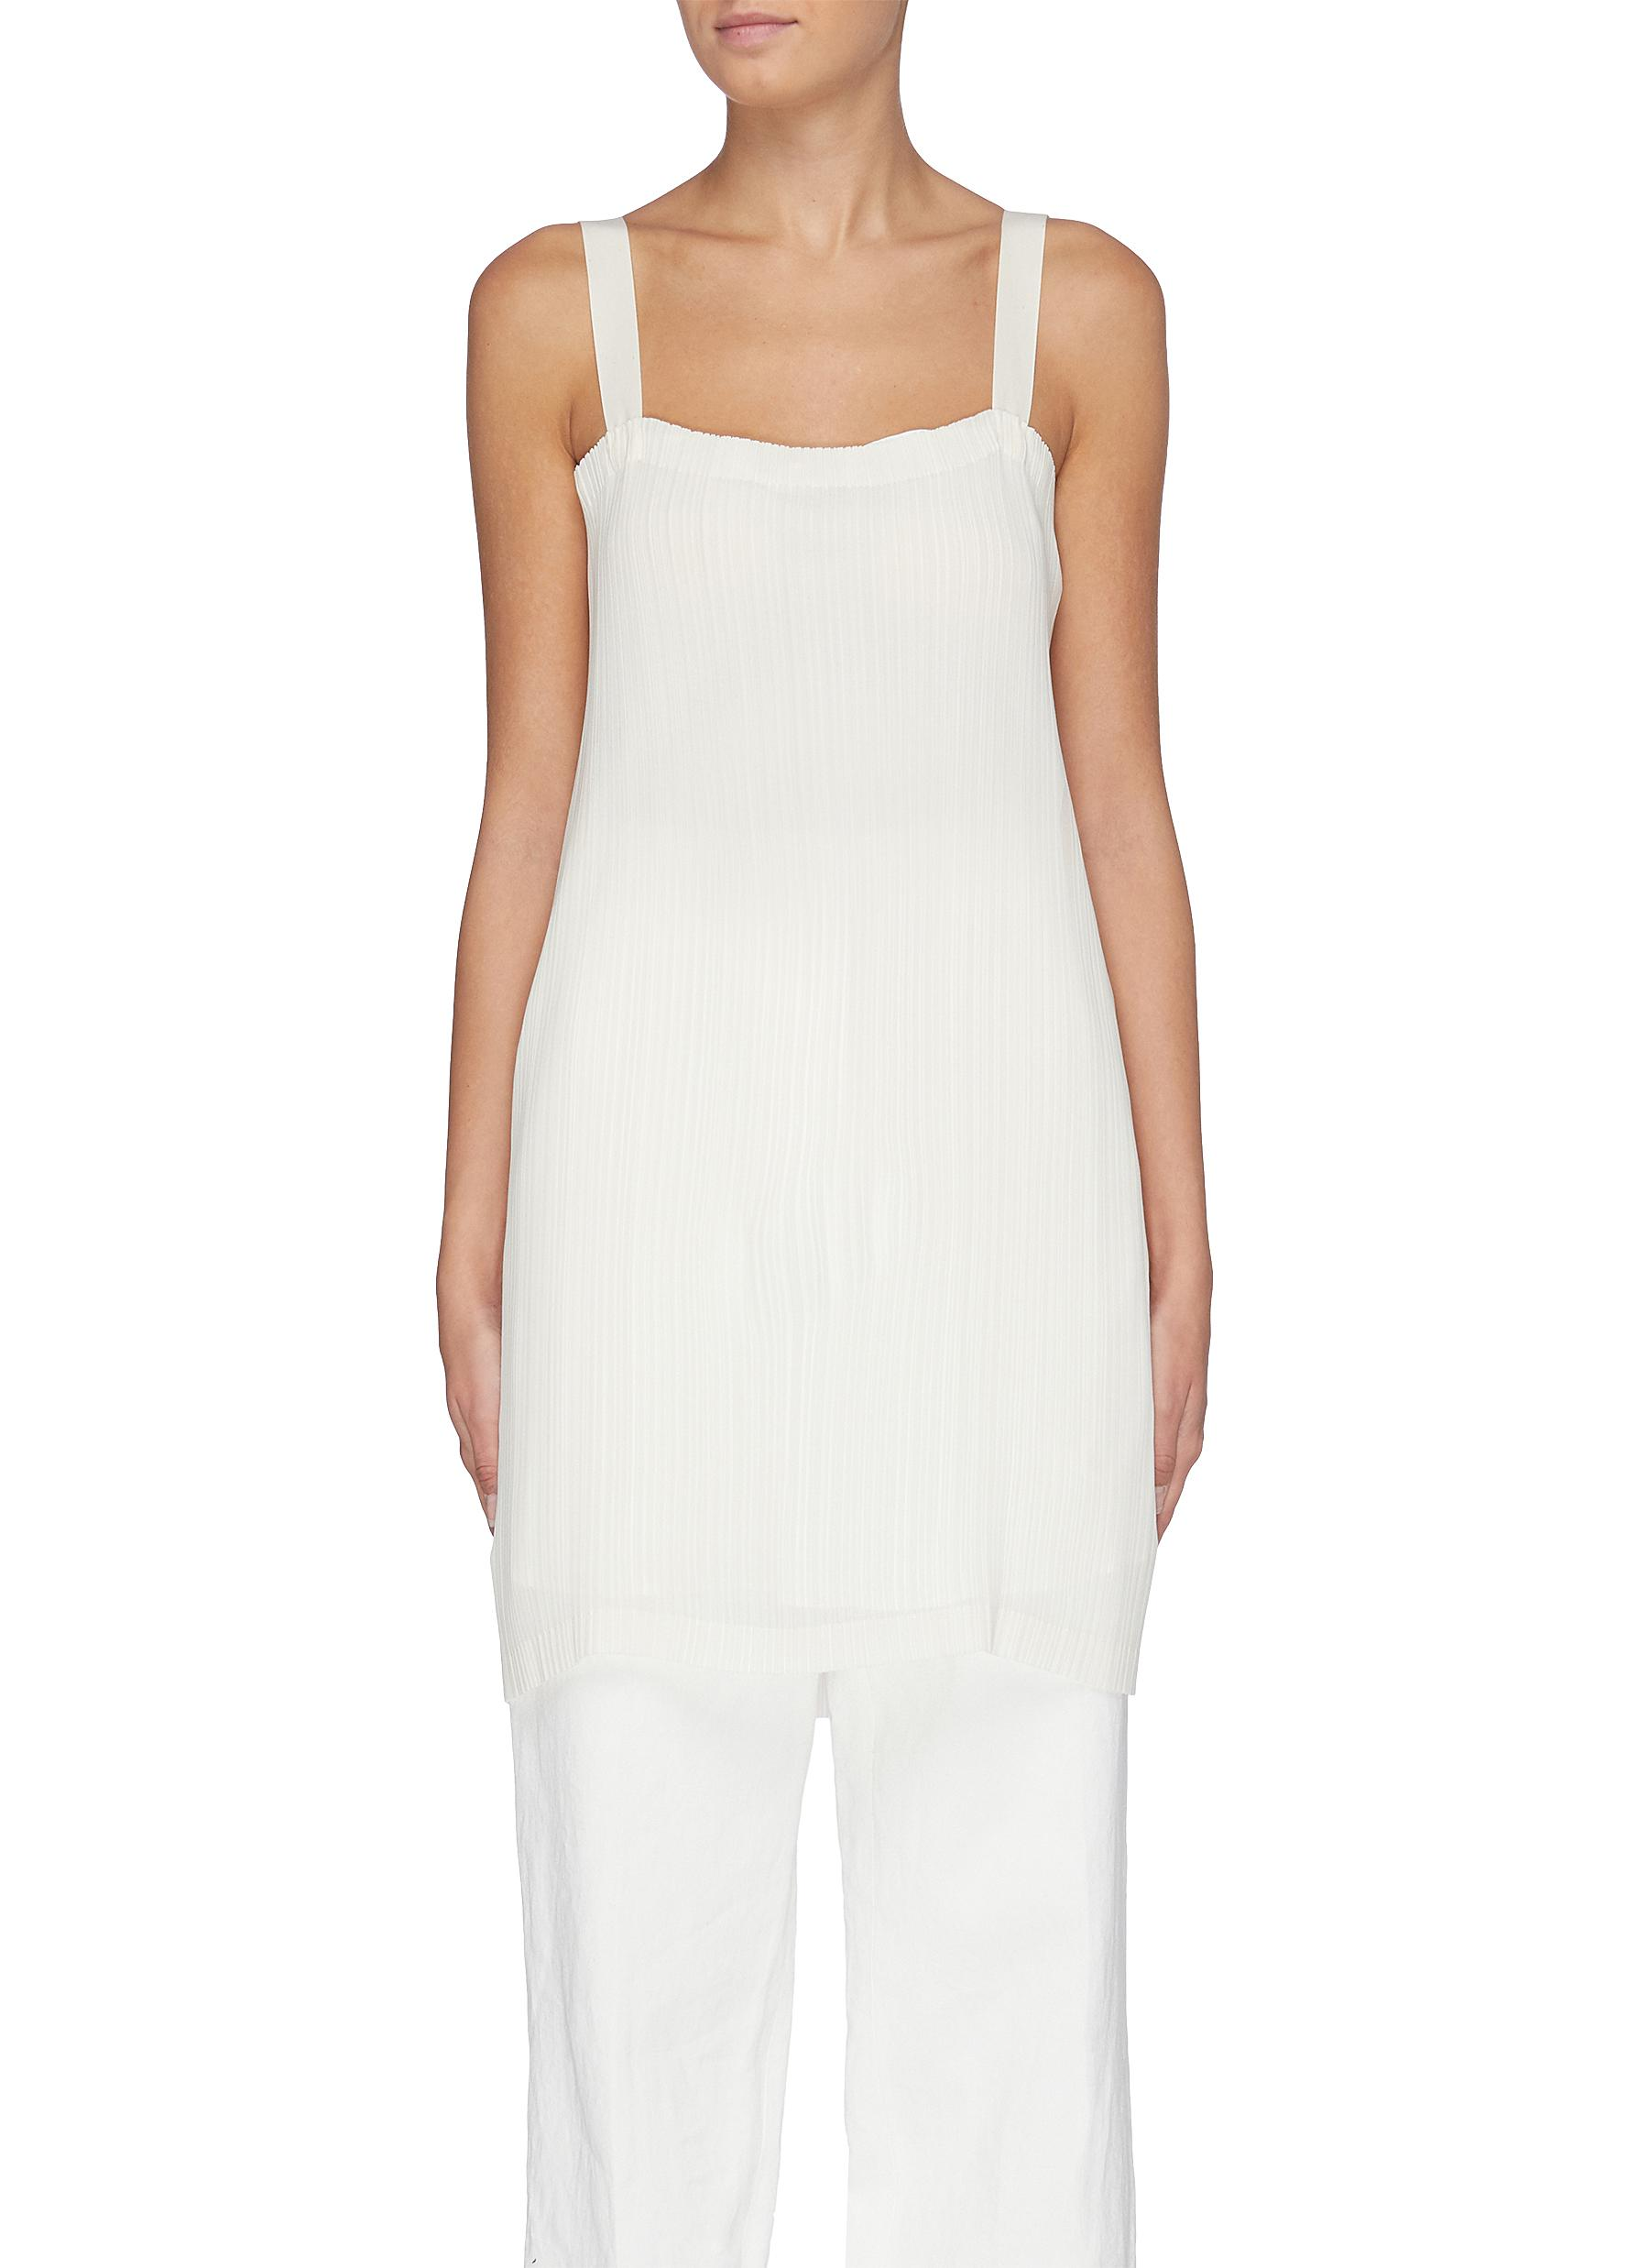 Candid plisse pleated crepe top by The Row